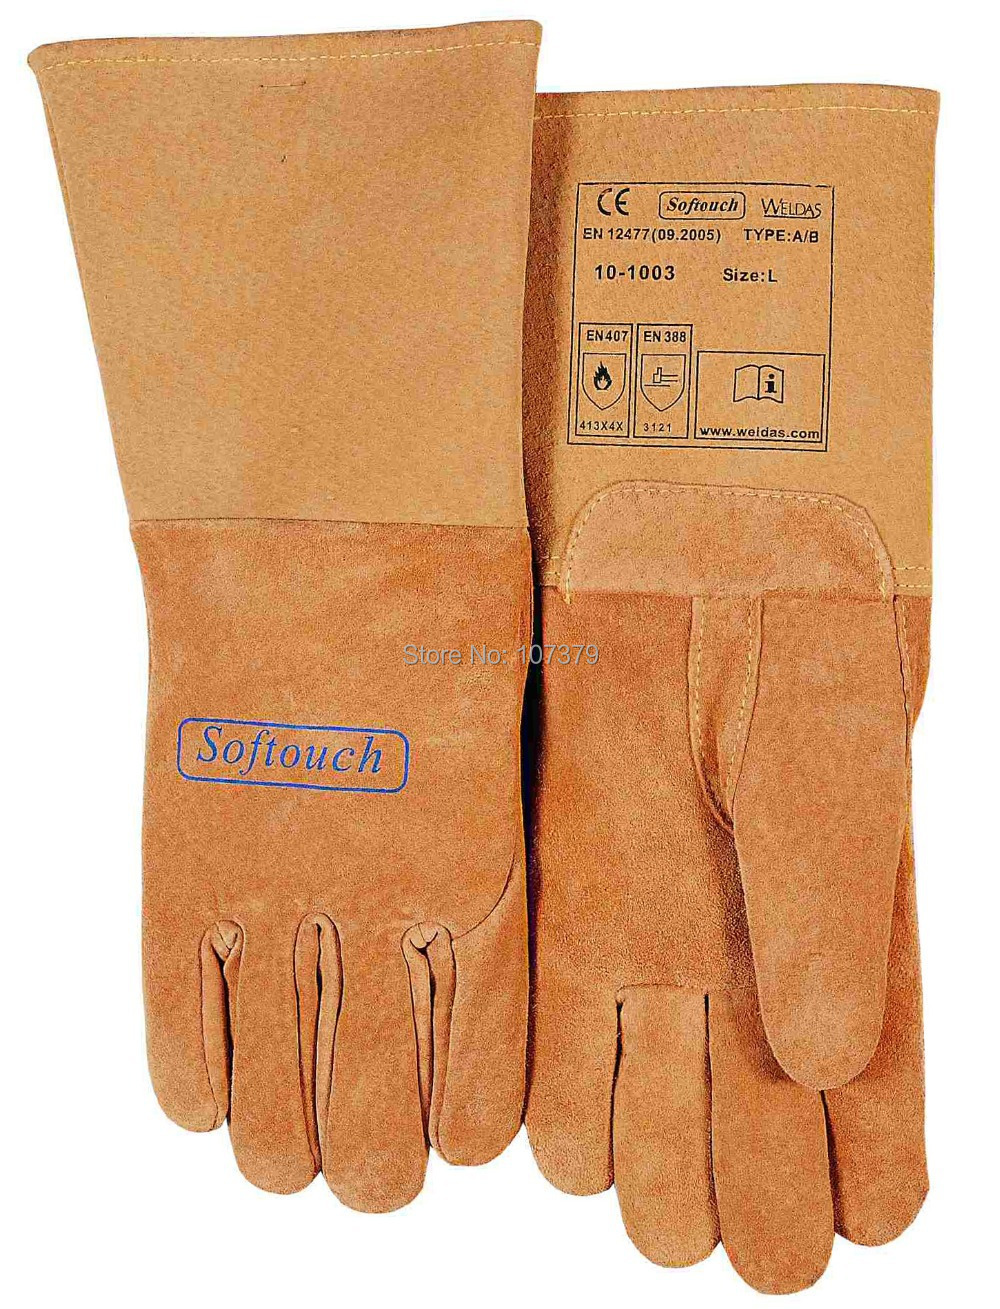 TIG MIG  Work Glove Top Grain Reverse Pigskin Leather Welding Gloves leather safety glove deluxe tig mig leather welding glove comfoflex leather driver work glove